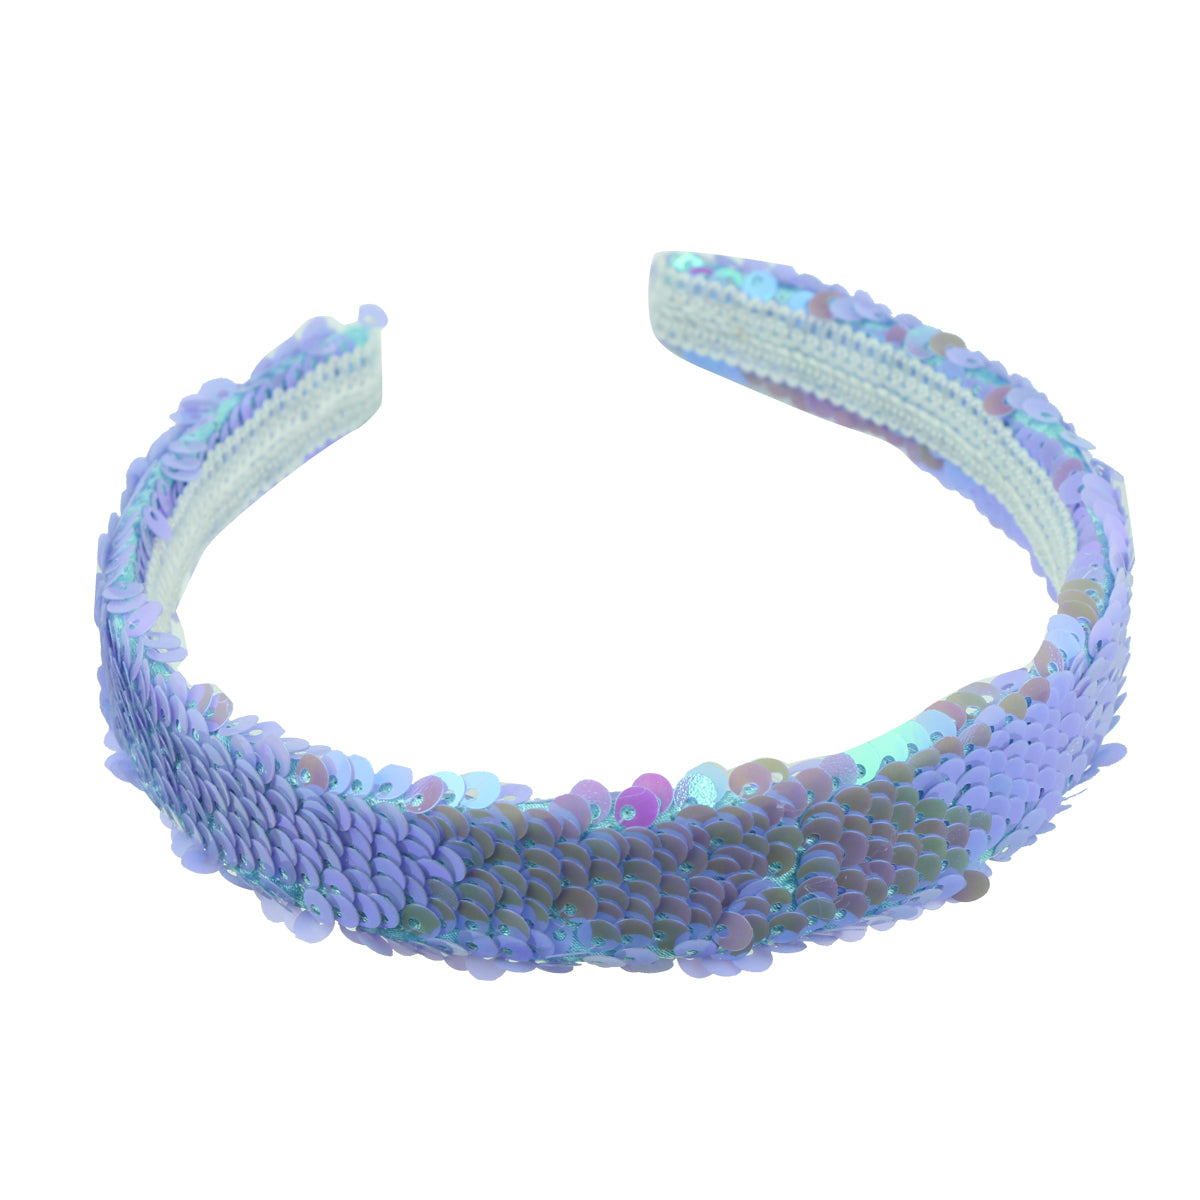 holographic revisable mermaid sequin covered 2.5cm Alice hairband girl head piece hair hoops 6643 - SOHOBUCKS CO.,LIMITED